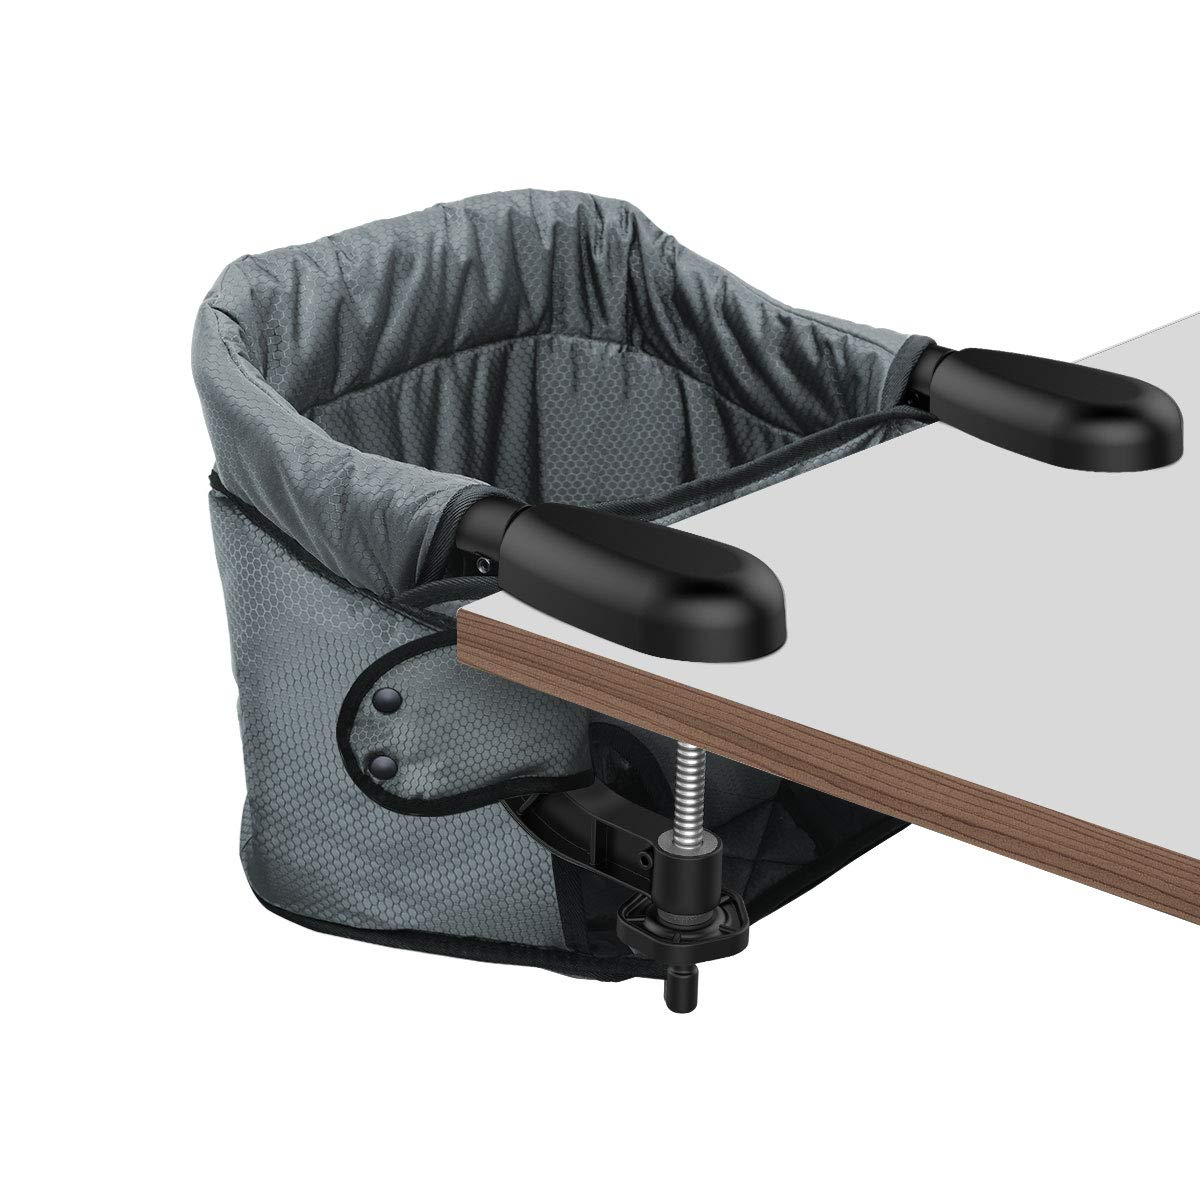 Hook On High Chair, Clip on Table Chair w/Fold-Flat Storage Feeding Seat -Attach to Fast Table Chair for Home and Travel